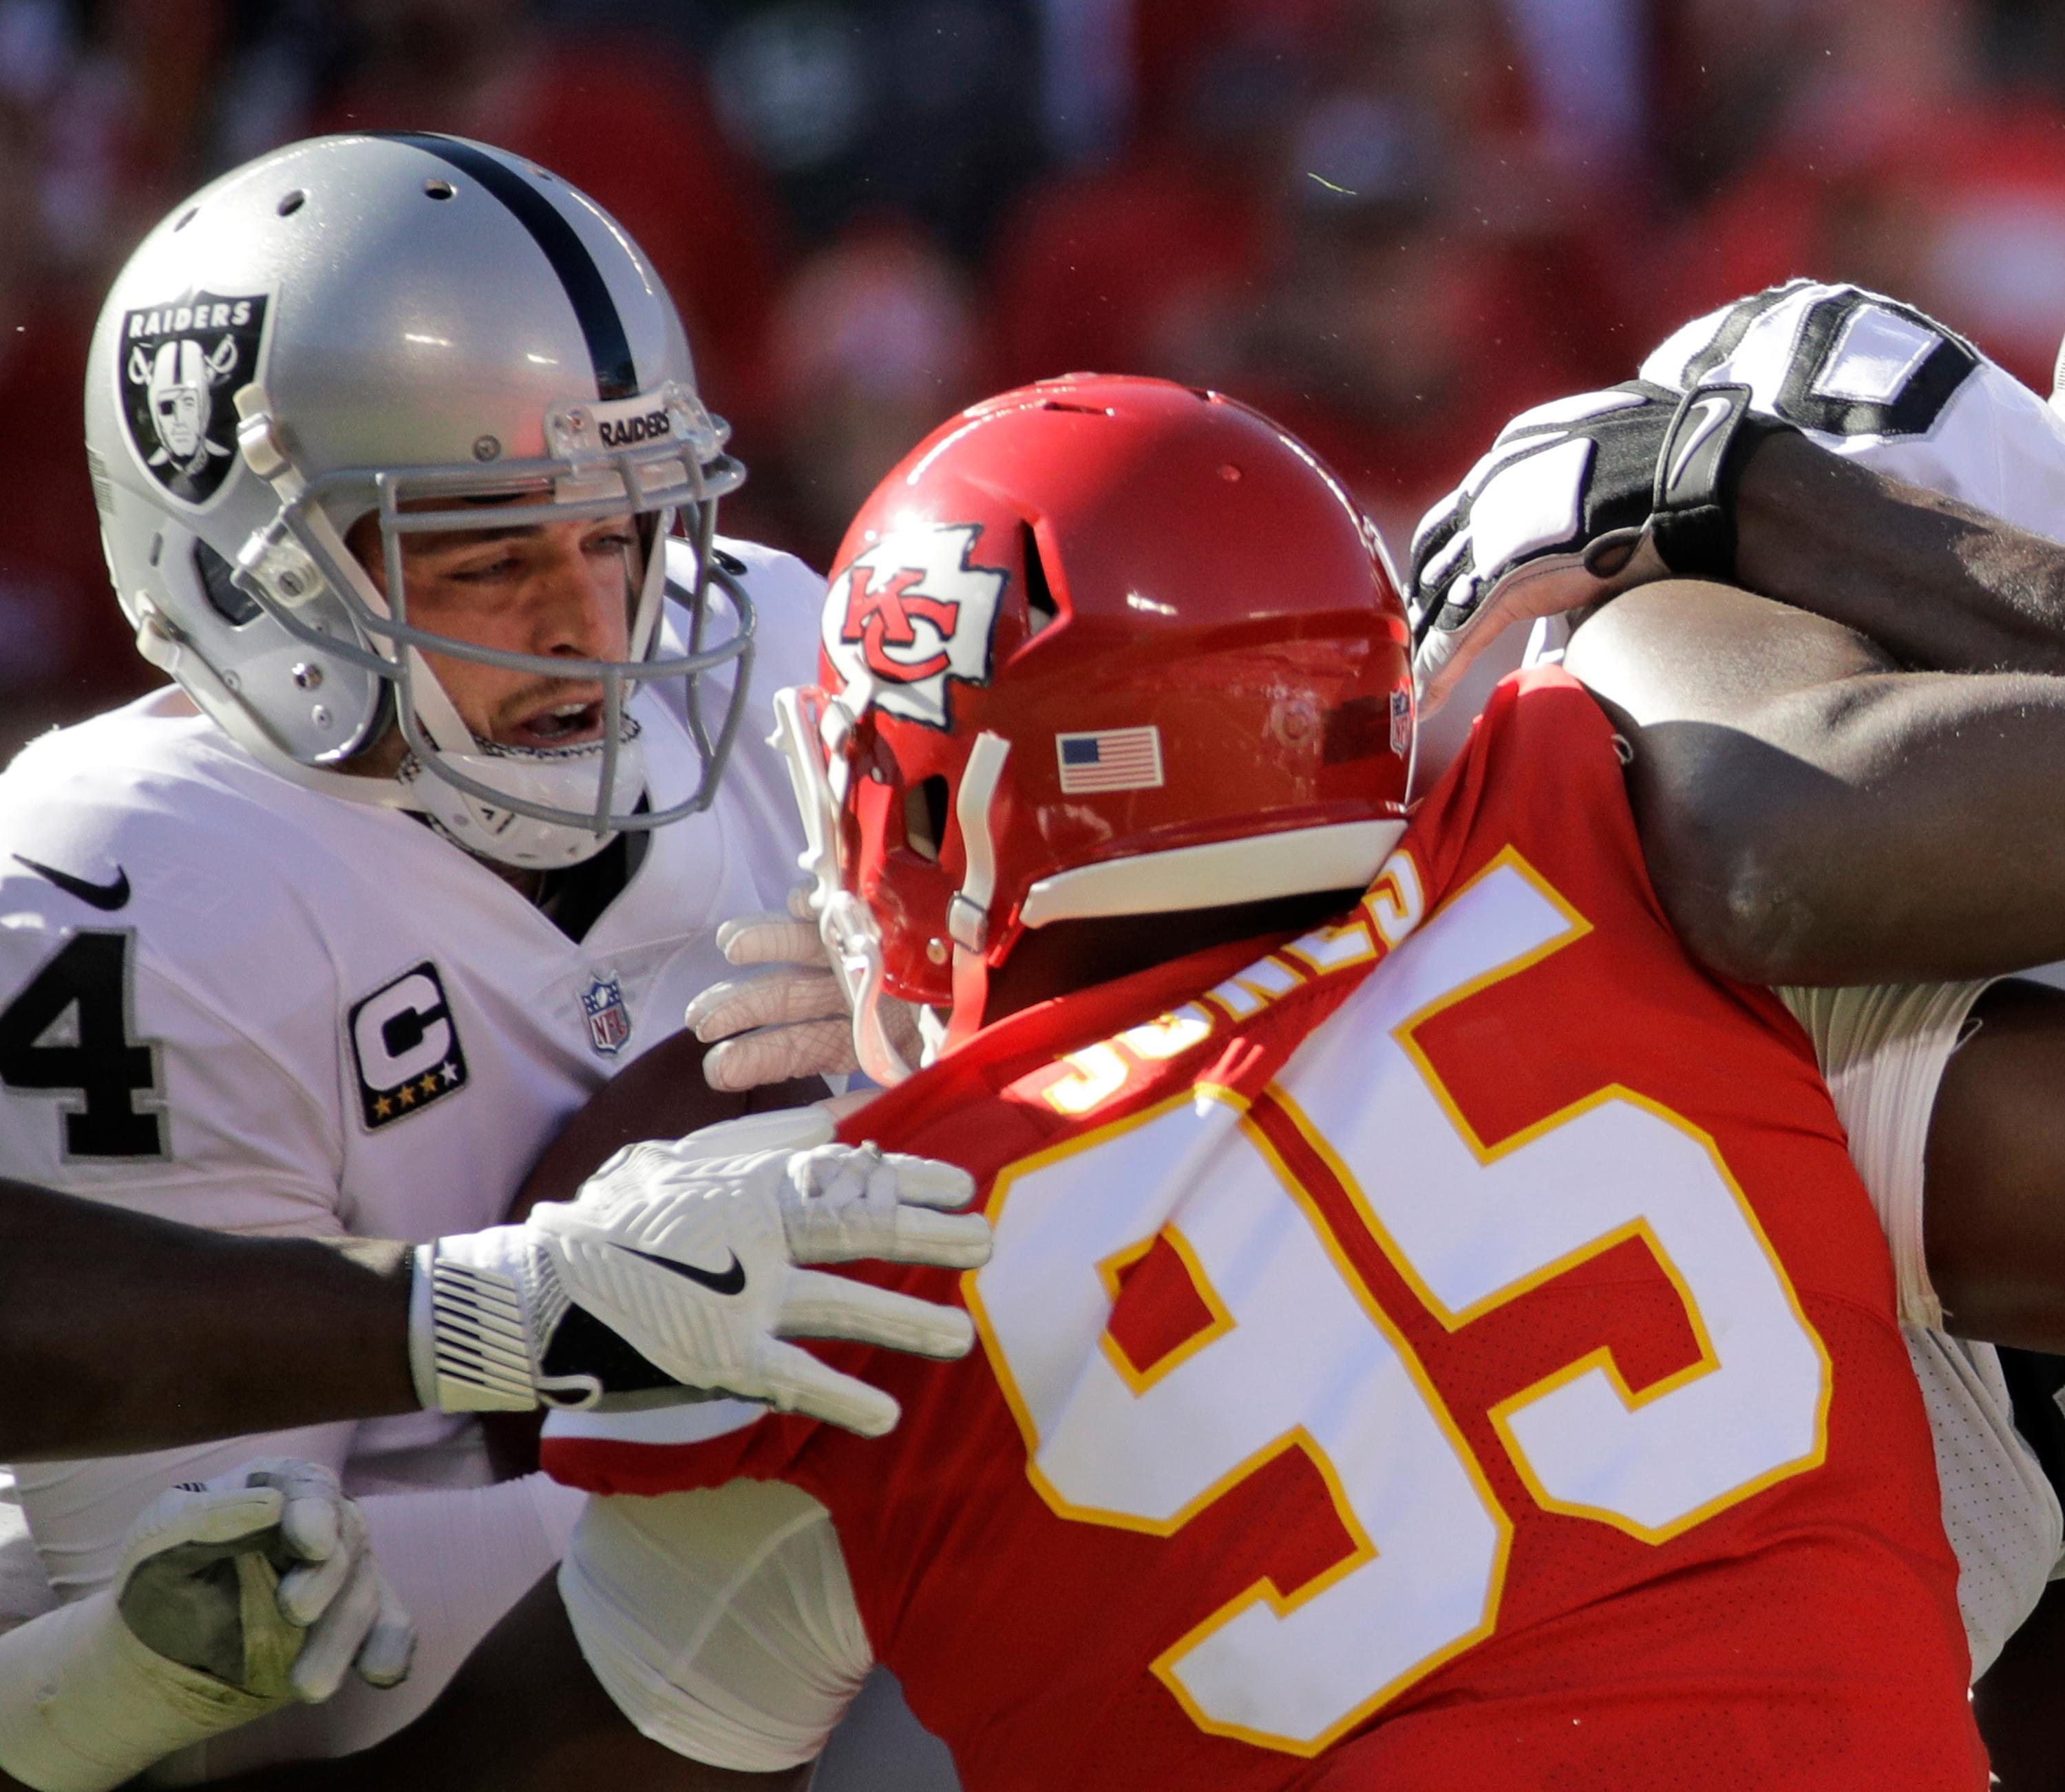 Kansas City Chiefs defensive lineman Chris Jones (95) sacks Oakland Raiders quarterback Derek Carr (4) during the first half of an NFL football game in Kansas City, Mo., Sunday, Dec. 10, 2017. (AP Photo/Charlie Riedel)